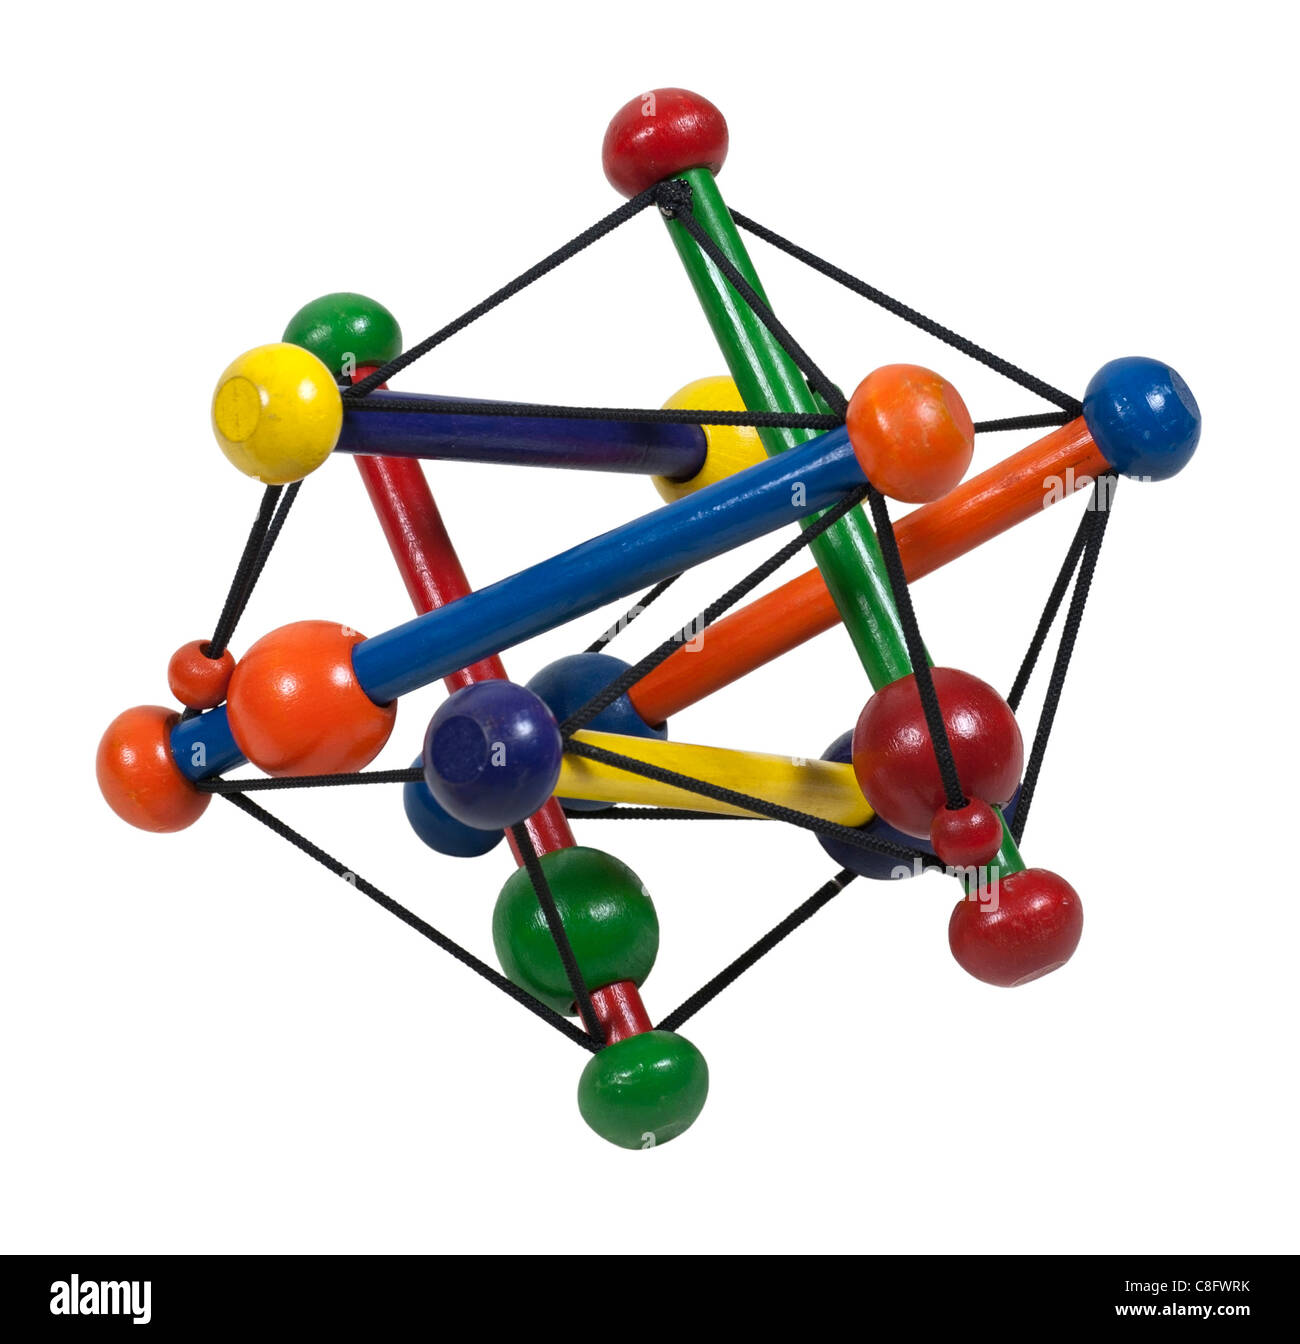 Atom model made of beads and strings - path included - Stock Image